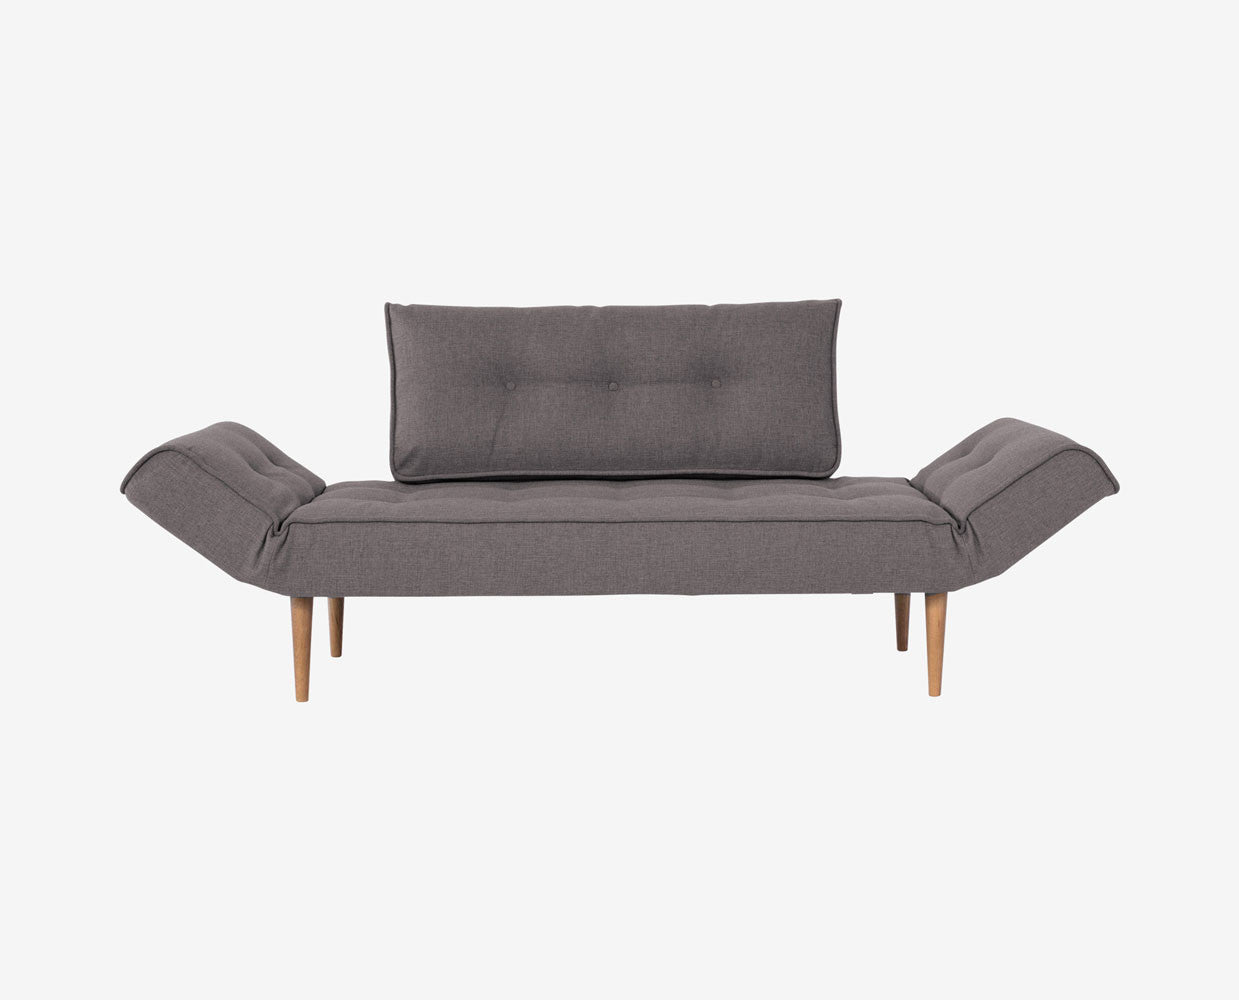 Stylish versatile contemporary futon sofa